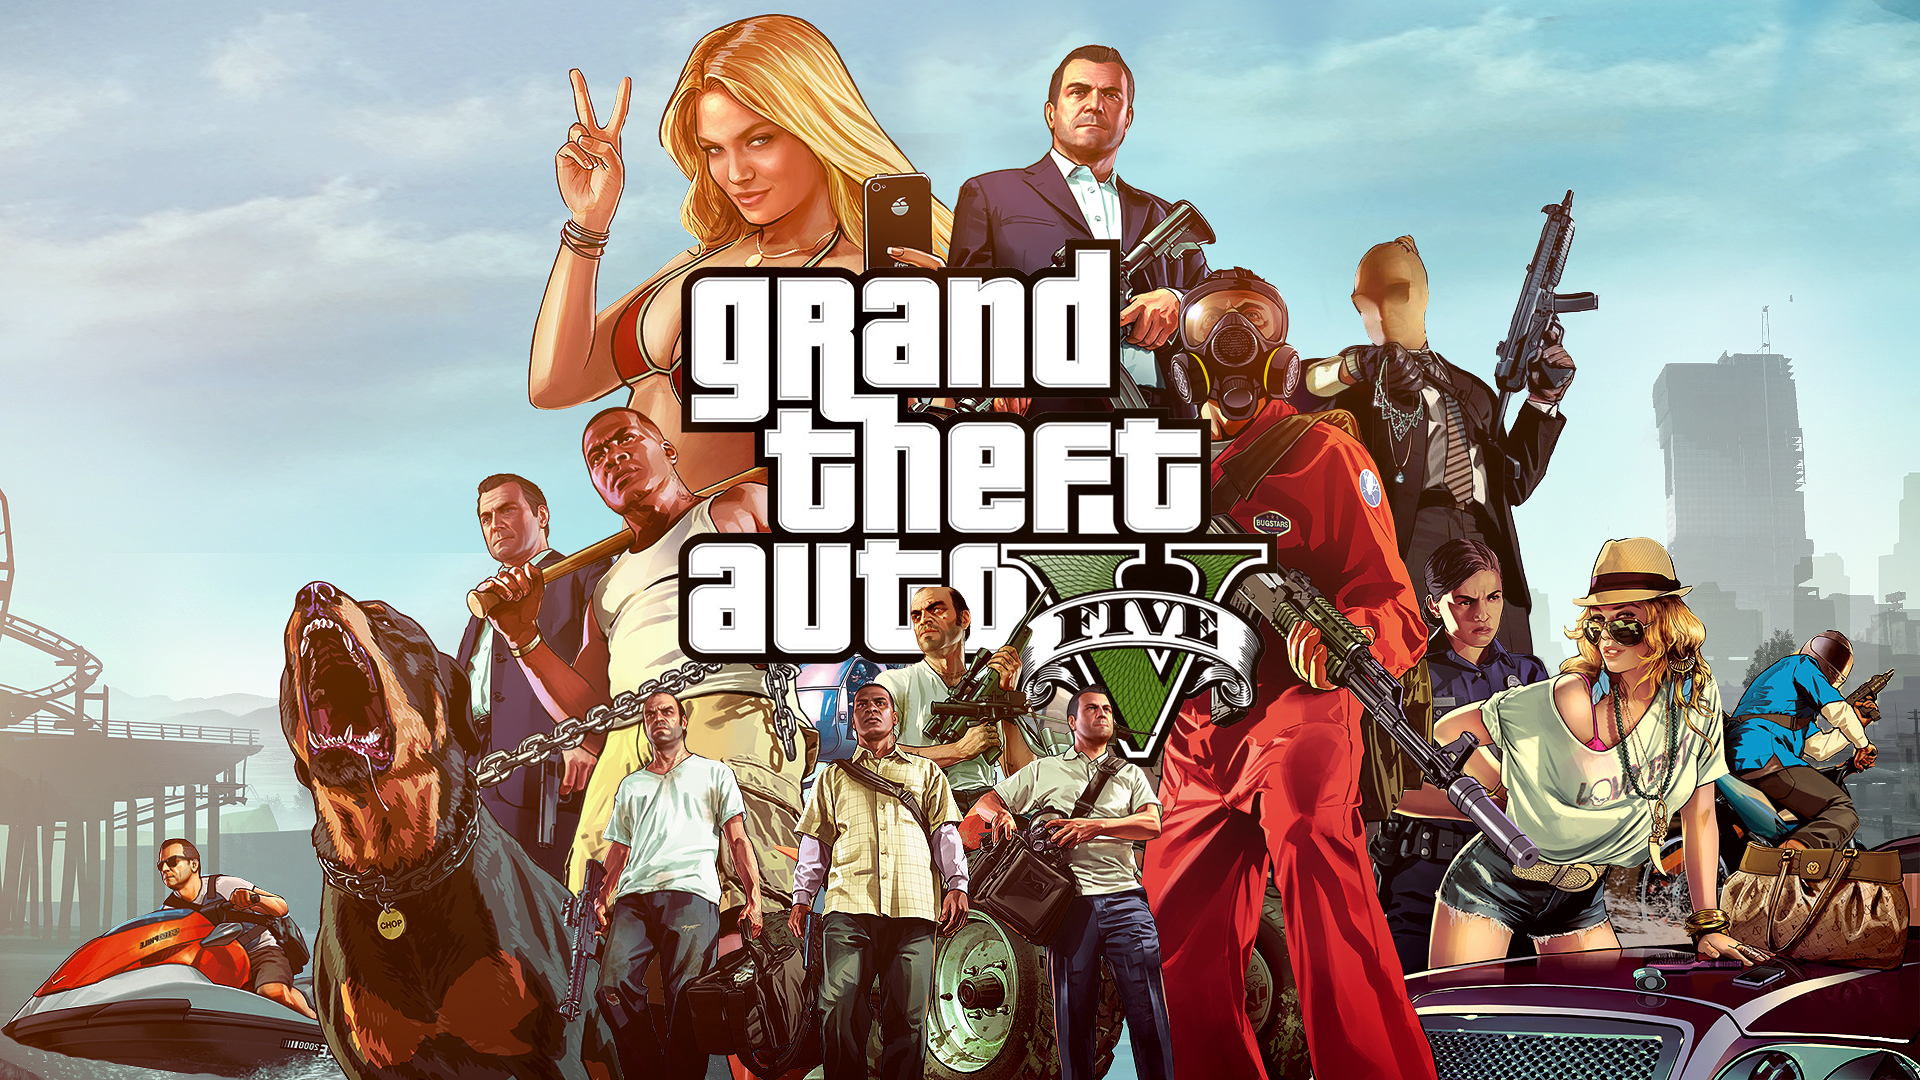 cran Grand Theft Auto 5 tous les wallpapers Grand Theft Auto 5 1920x1080